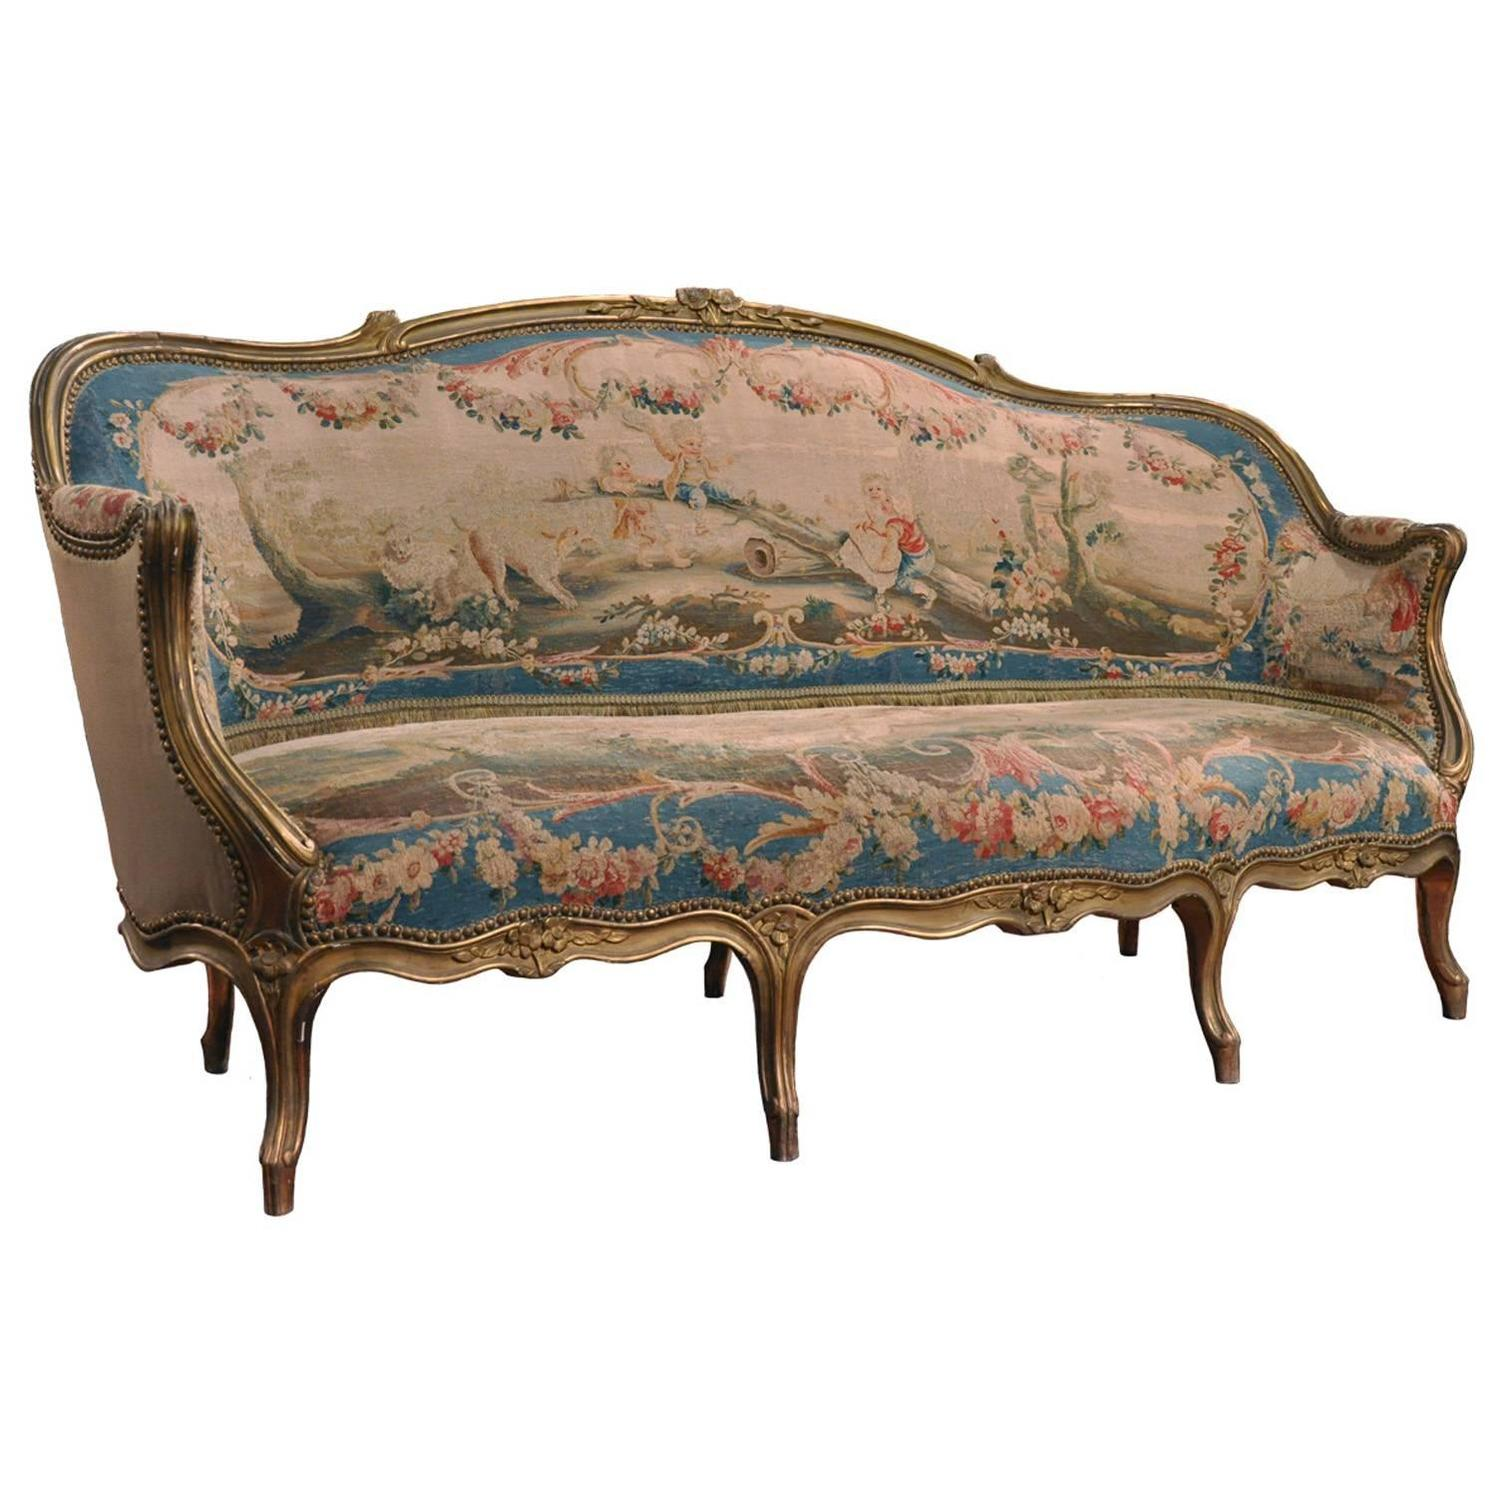 19th century french louis xv carved canap with aubusson tapestry for sale at 1stdibs. Black Bedroom Furniture Sets. Home Design Ideas